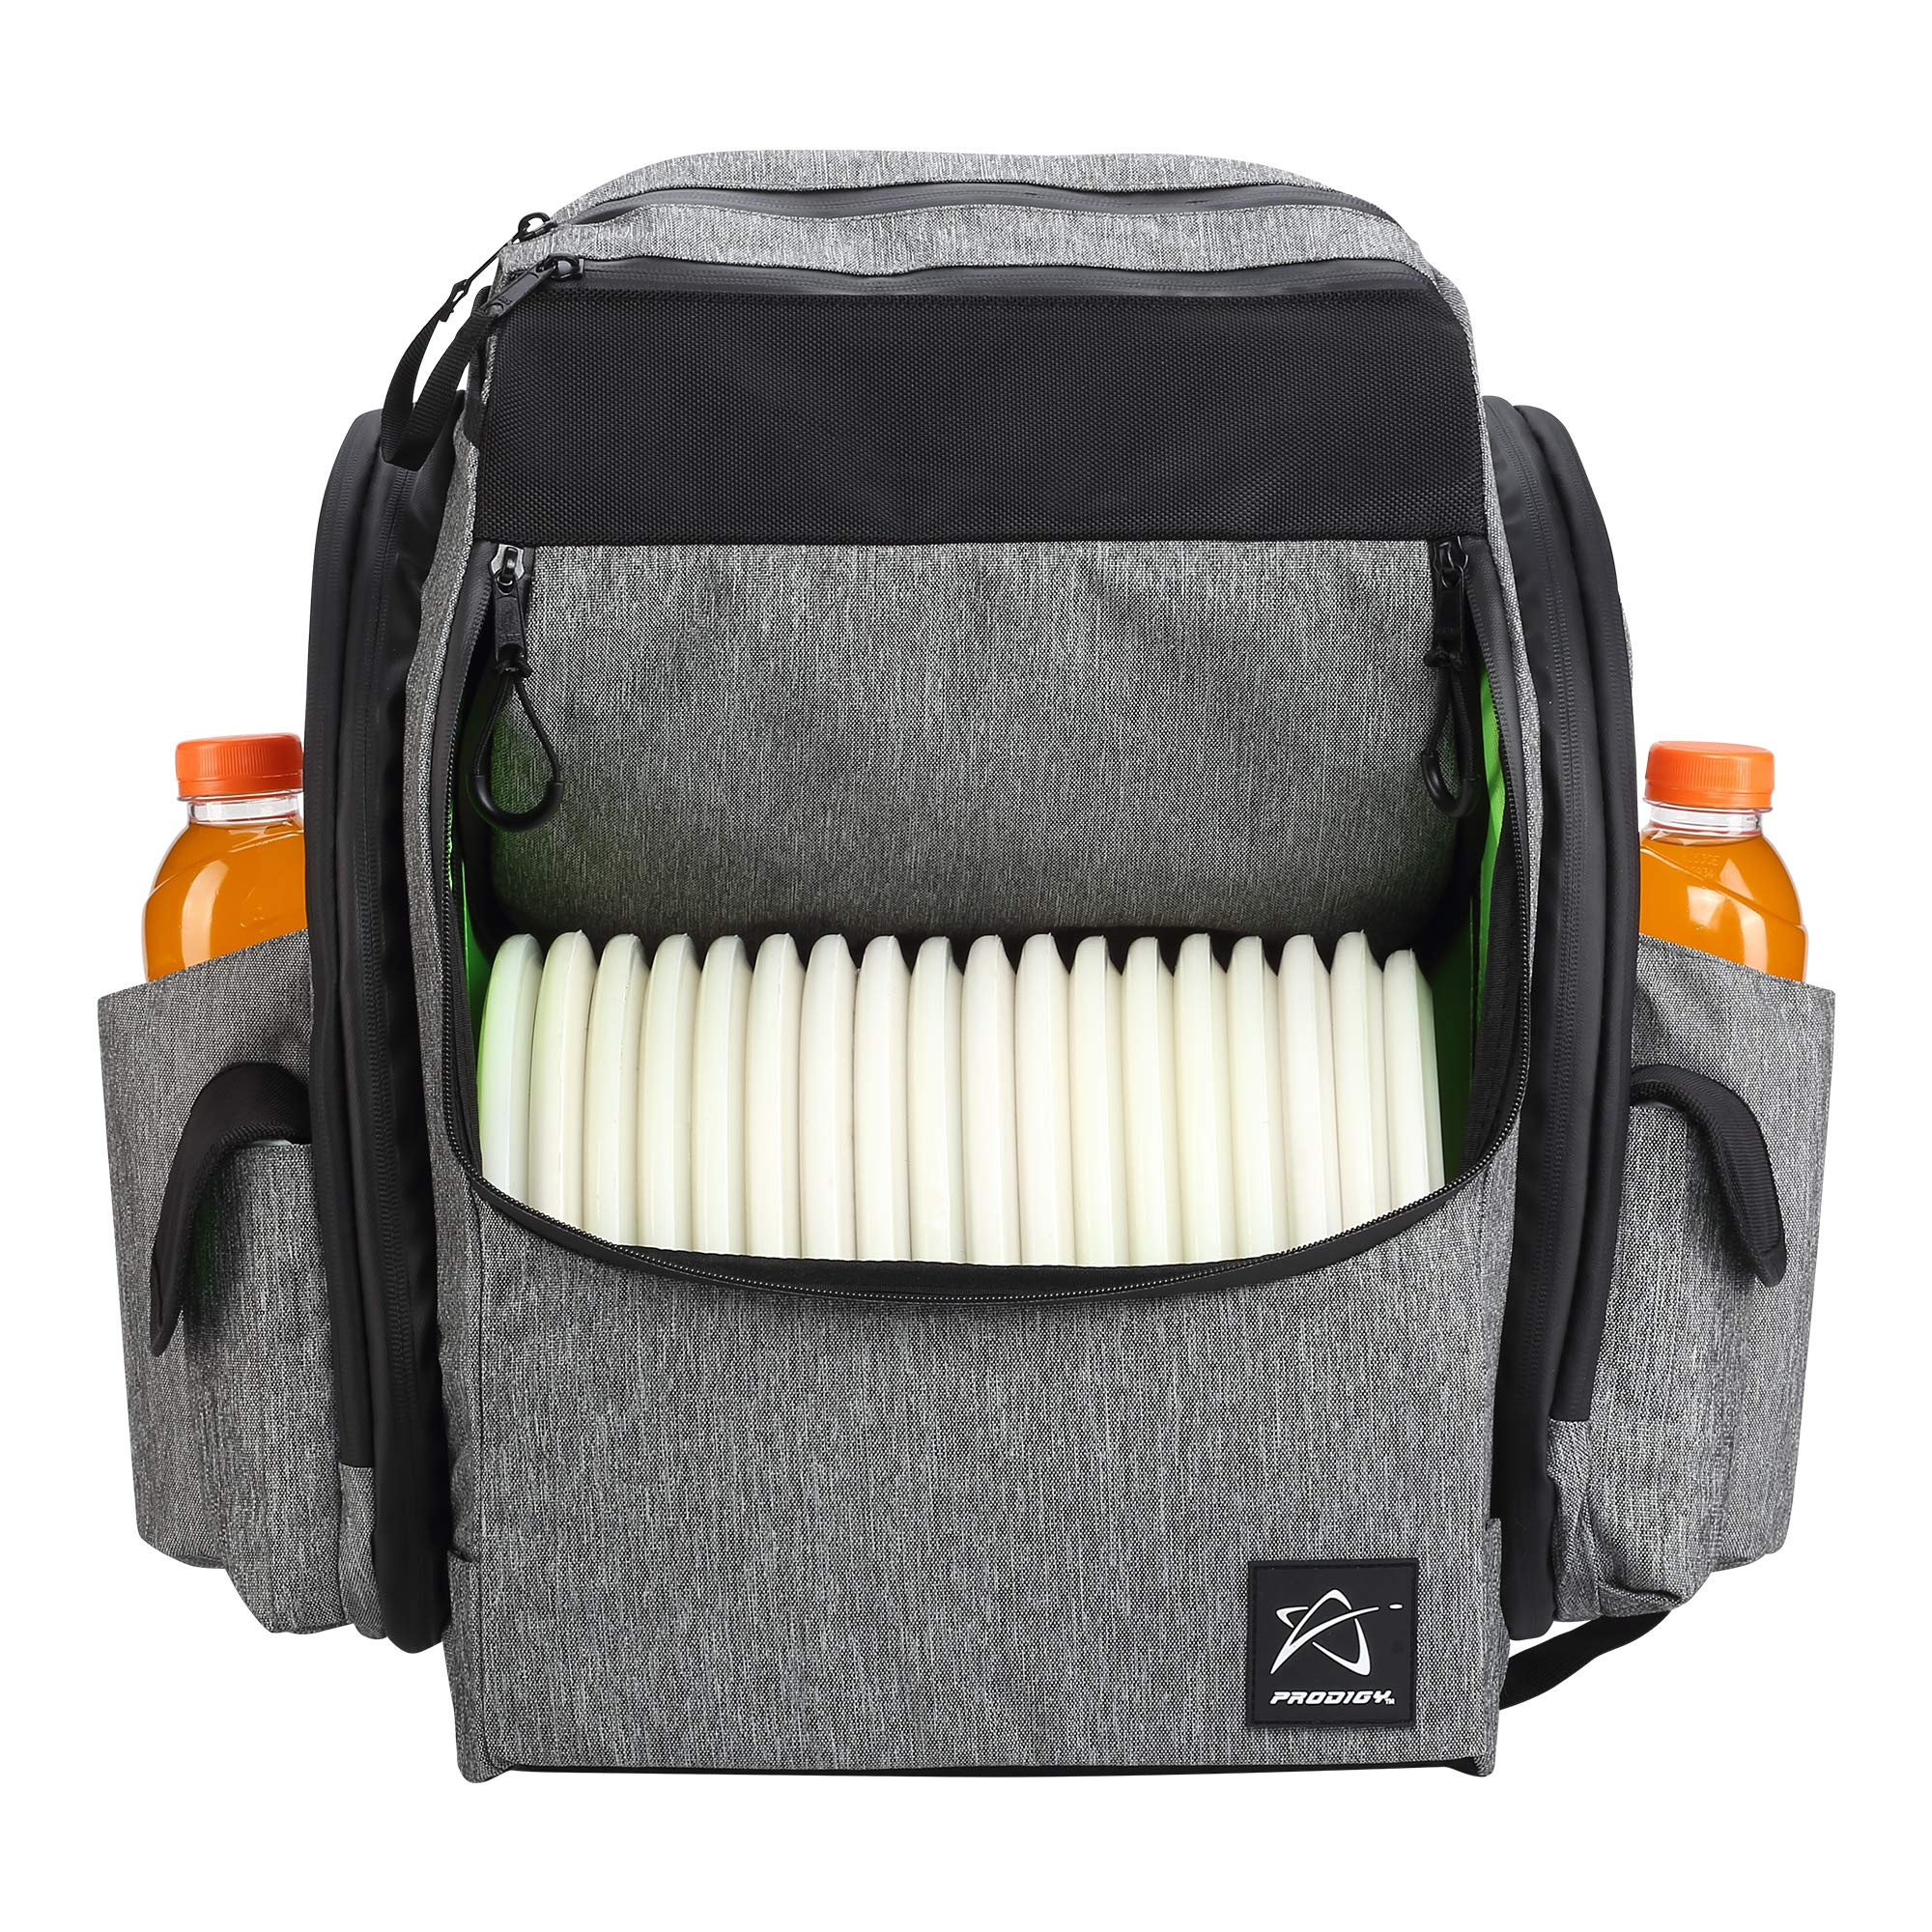 Prodigy Disc BP-1 V2 Disc Golf Backpack Bag - Fits 30+ Discs - Pro Quality (Heather Gray/Black, No Rainfly) by Prodigy Disc